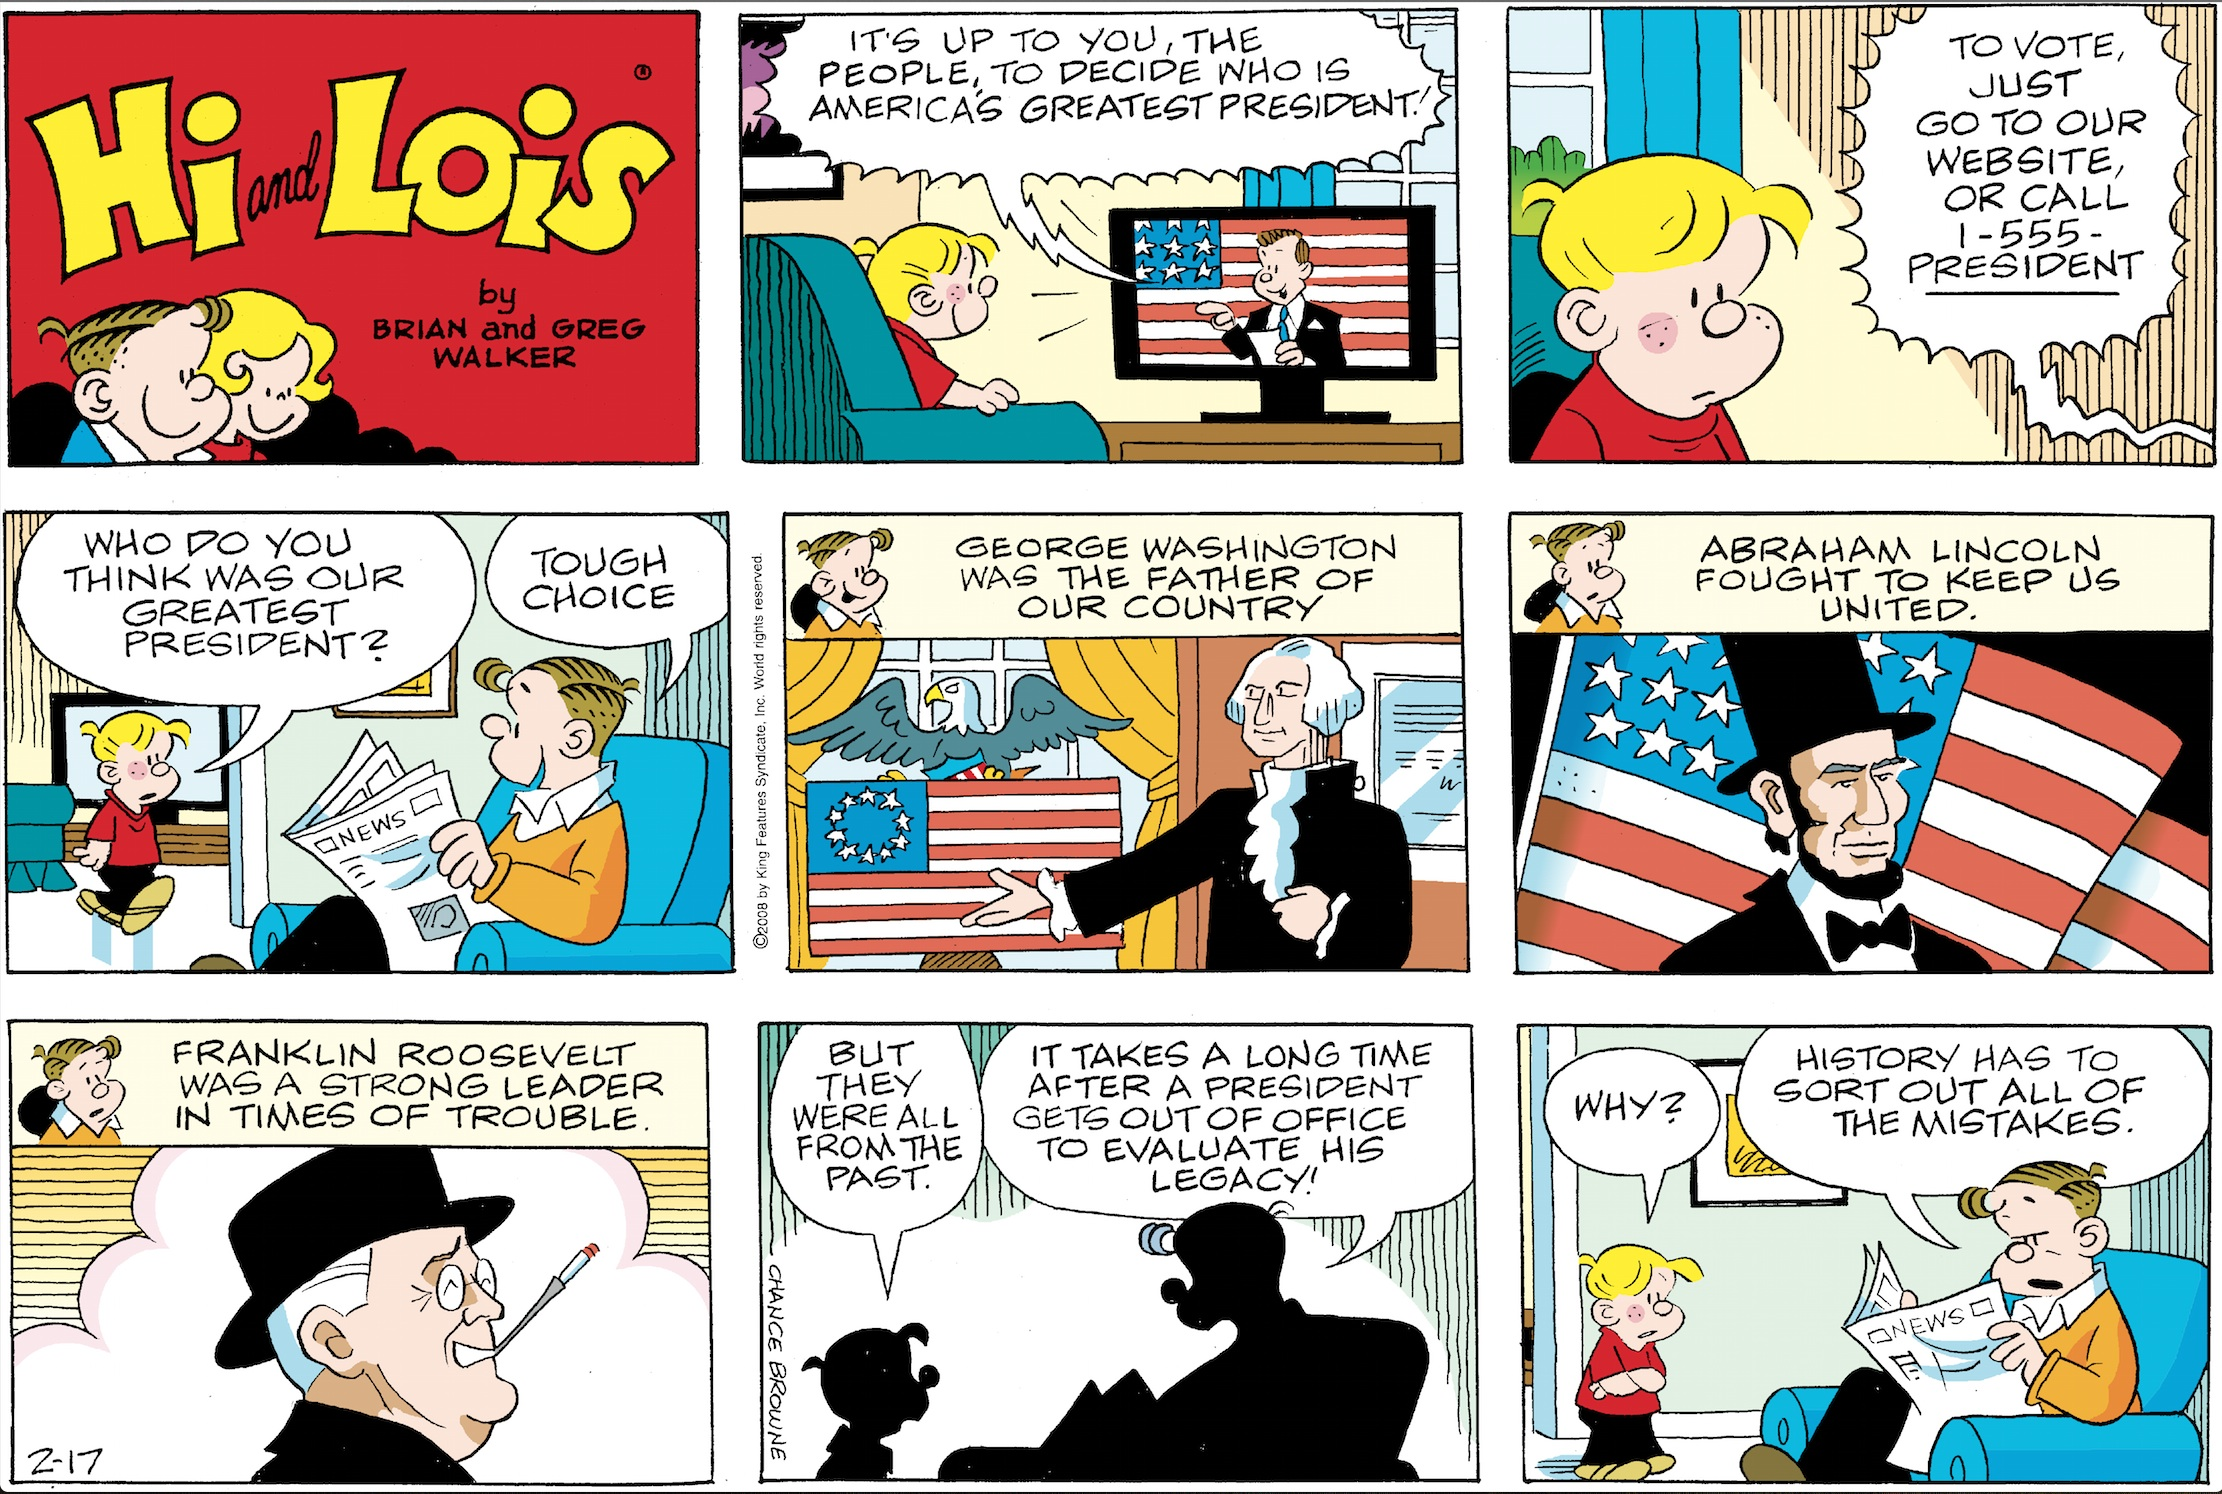 Hi and Lois Sunday page, February 17, 2008.